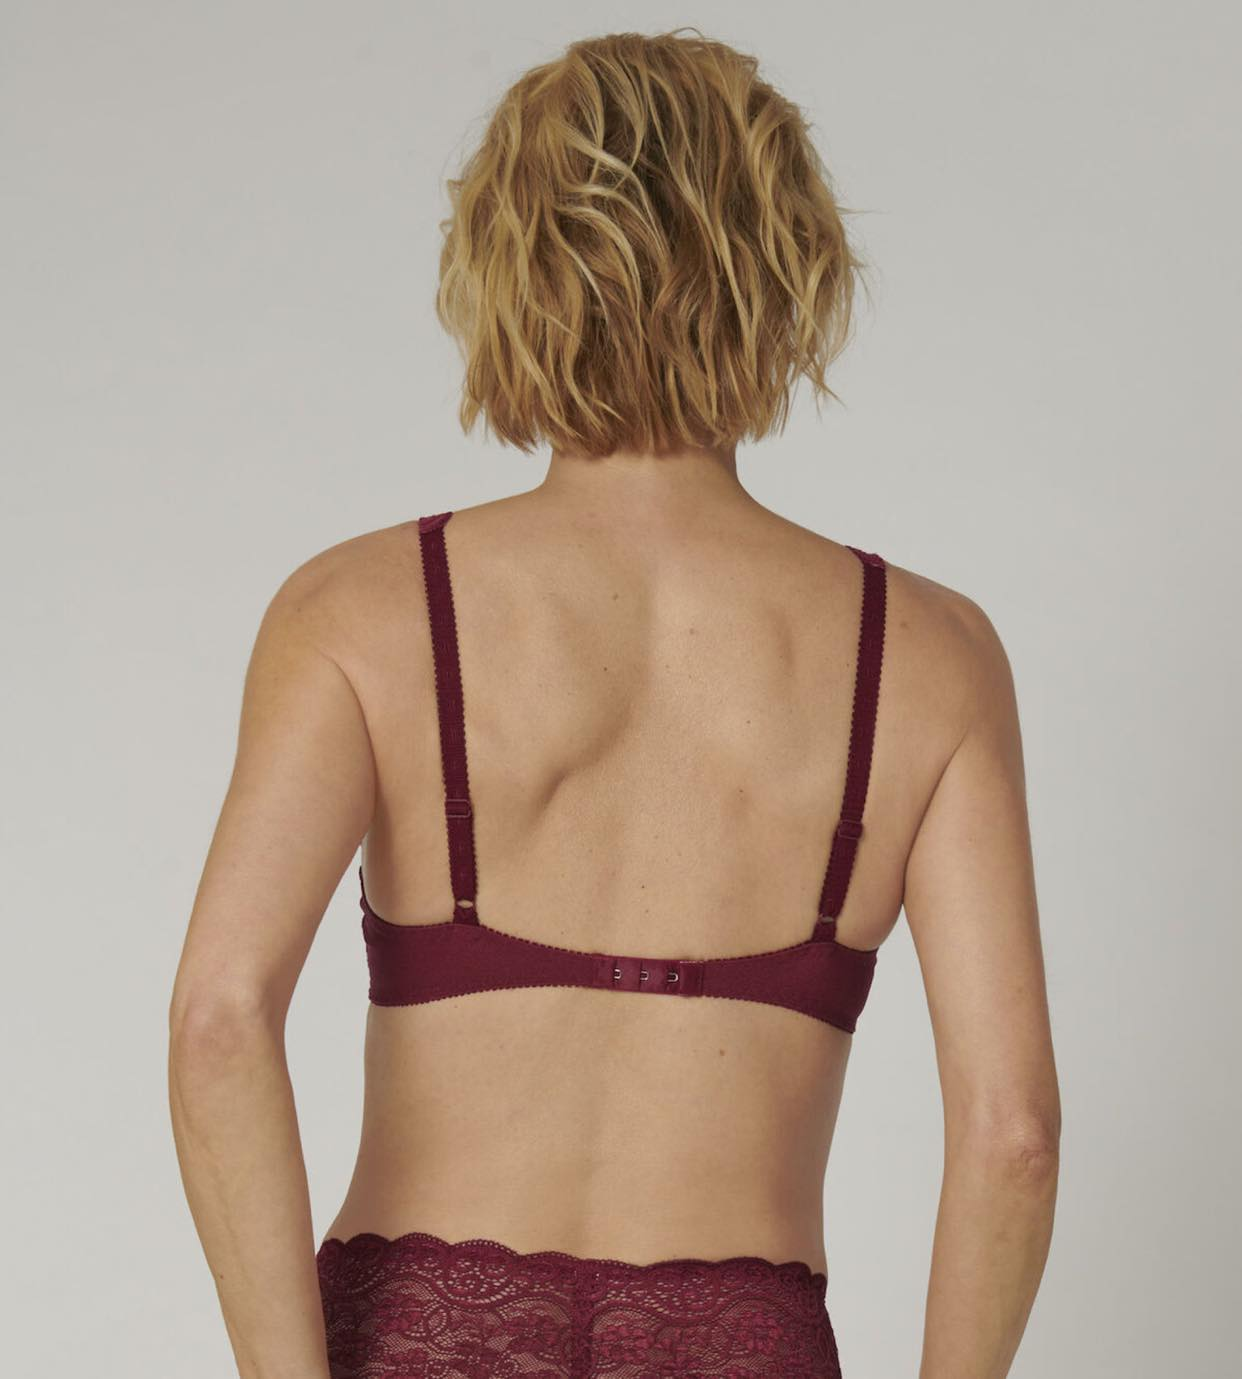 gallery-10175-for-602AA9585